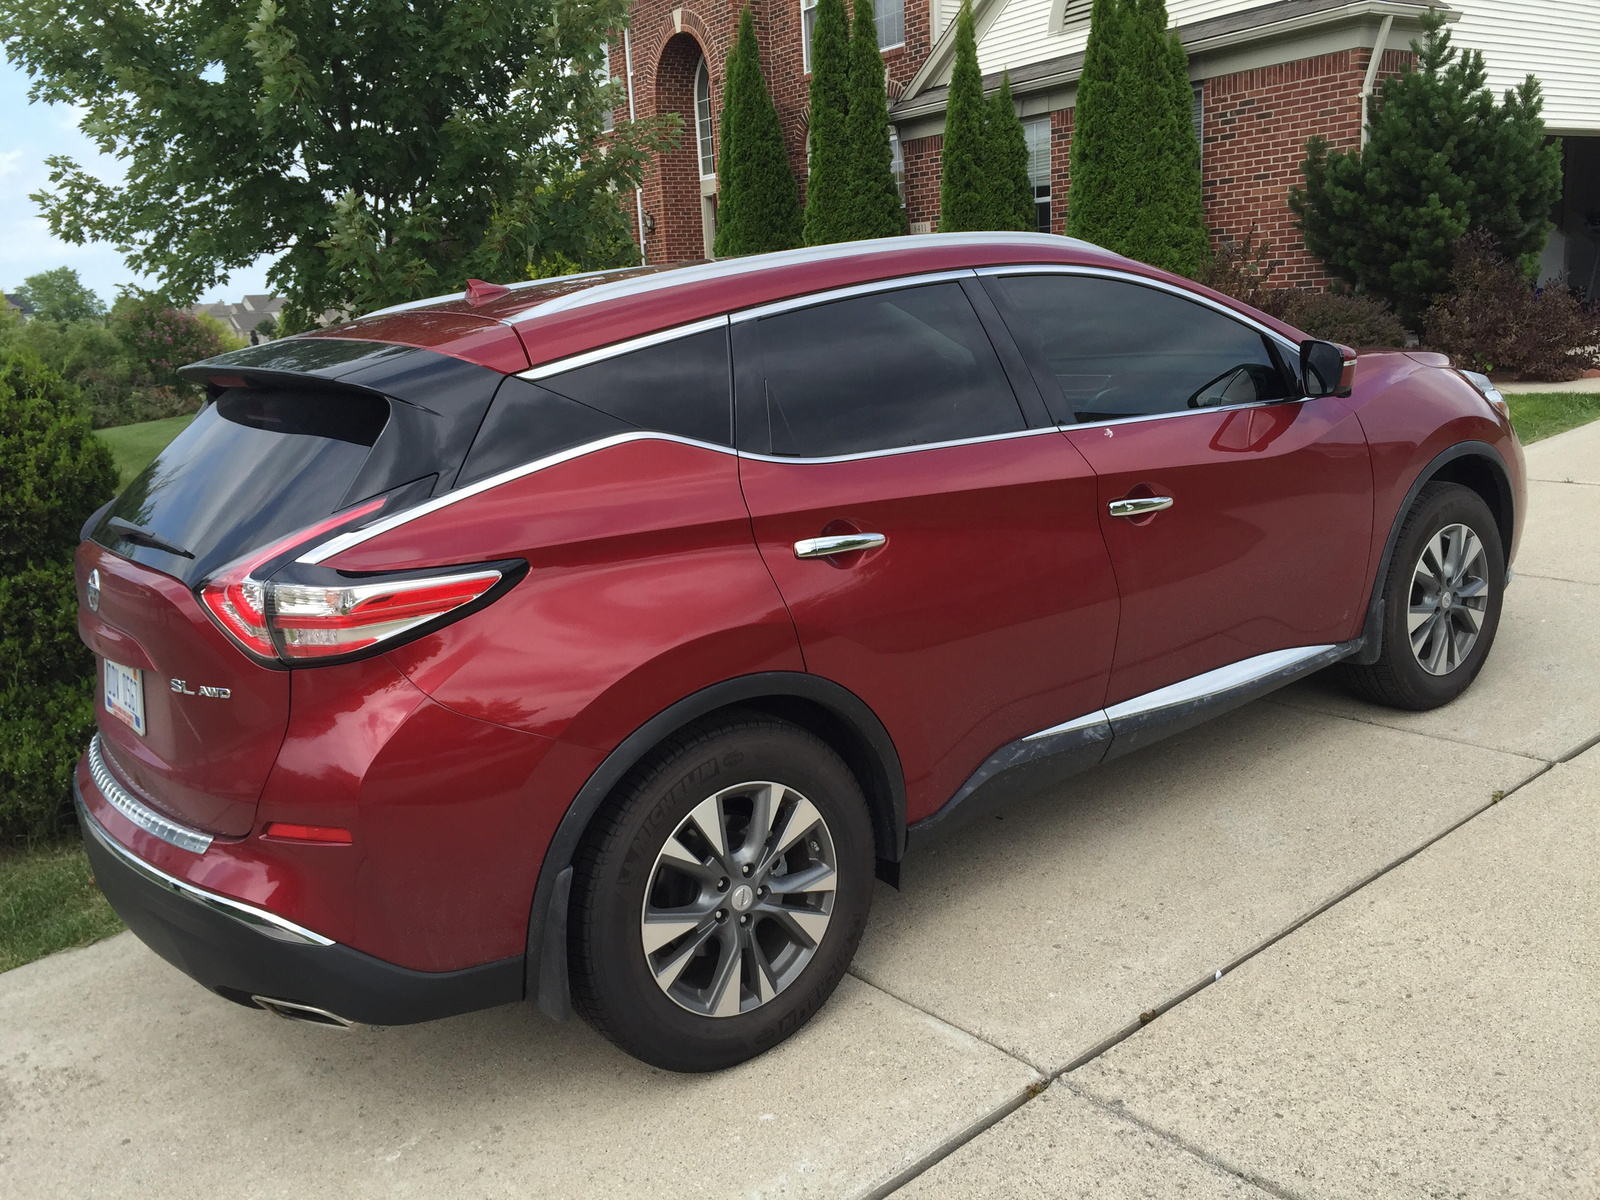 2015 nissan murano inventory autos post. Black Bedroom Furniture Sets. Home Design Ideas